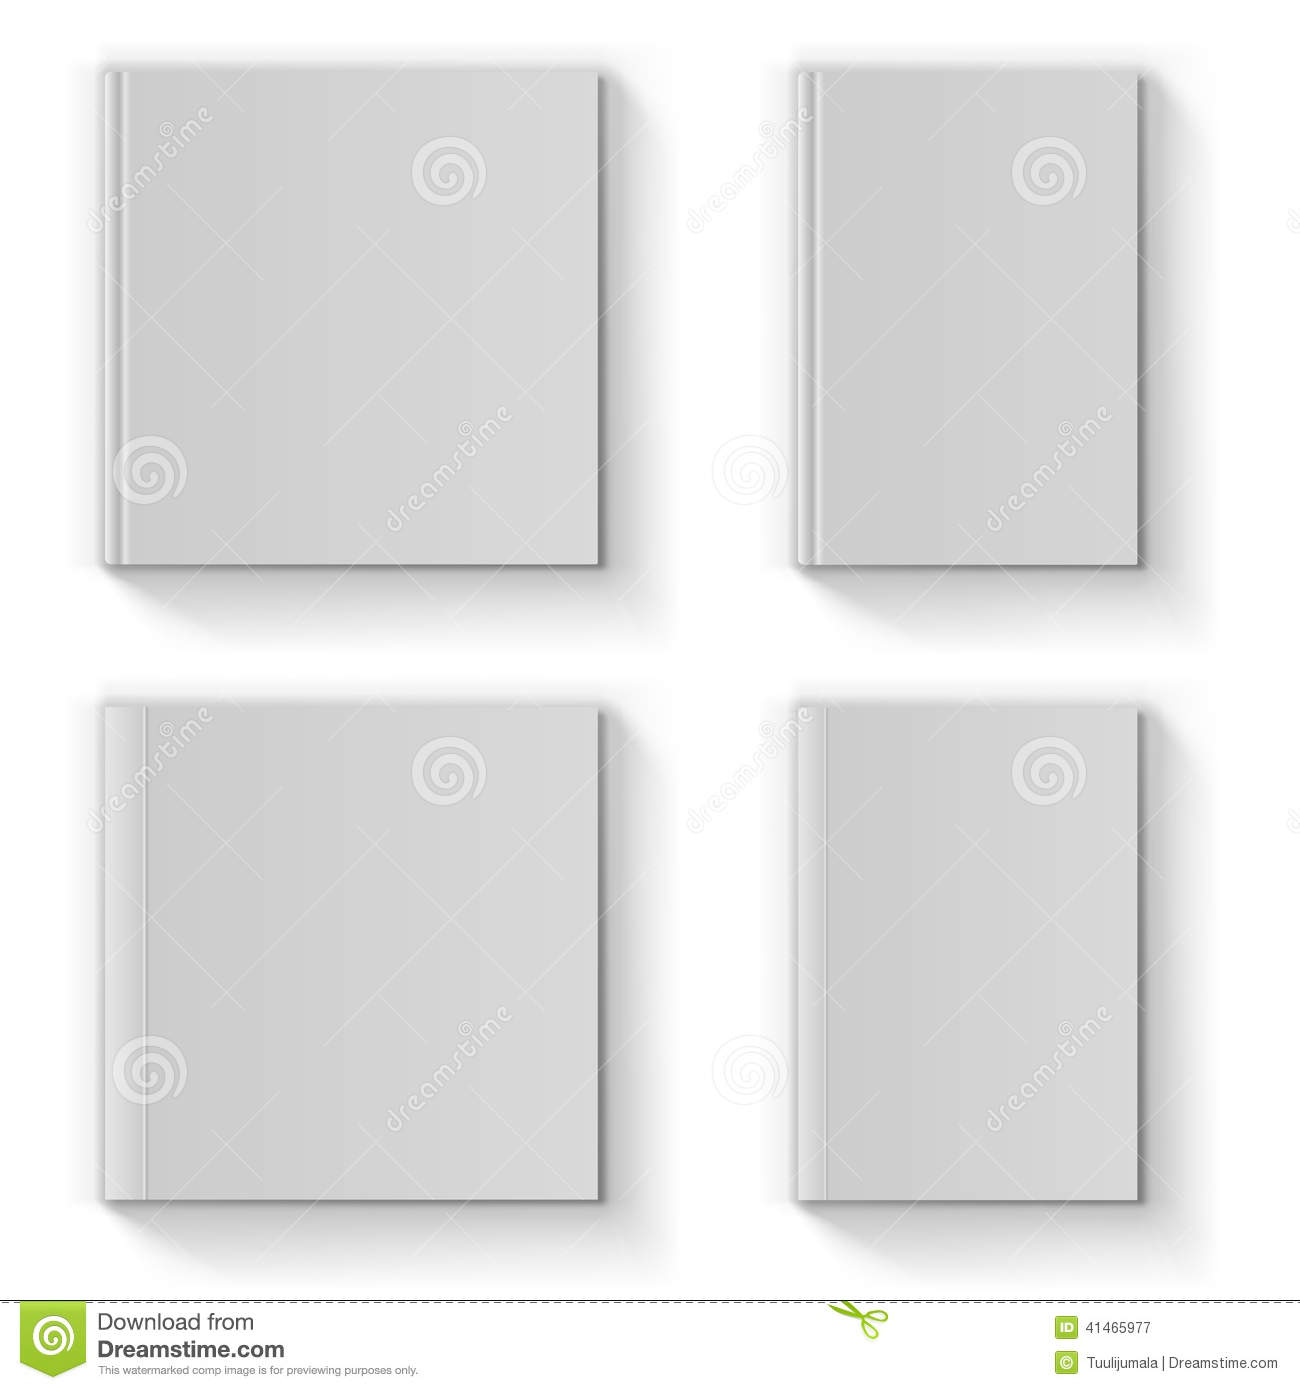 Blank Book Cover Template For Kids : Pin blank book cover template for kids on pinterest